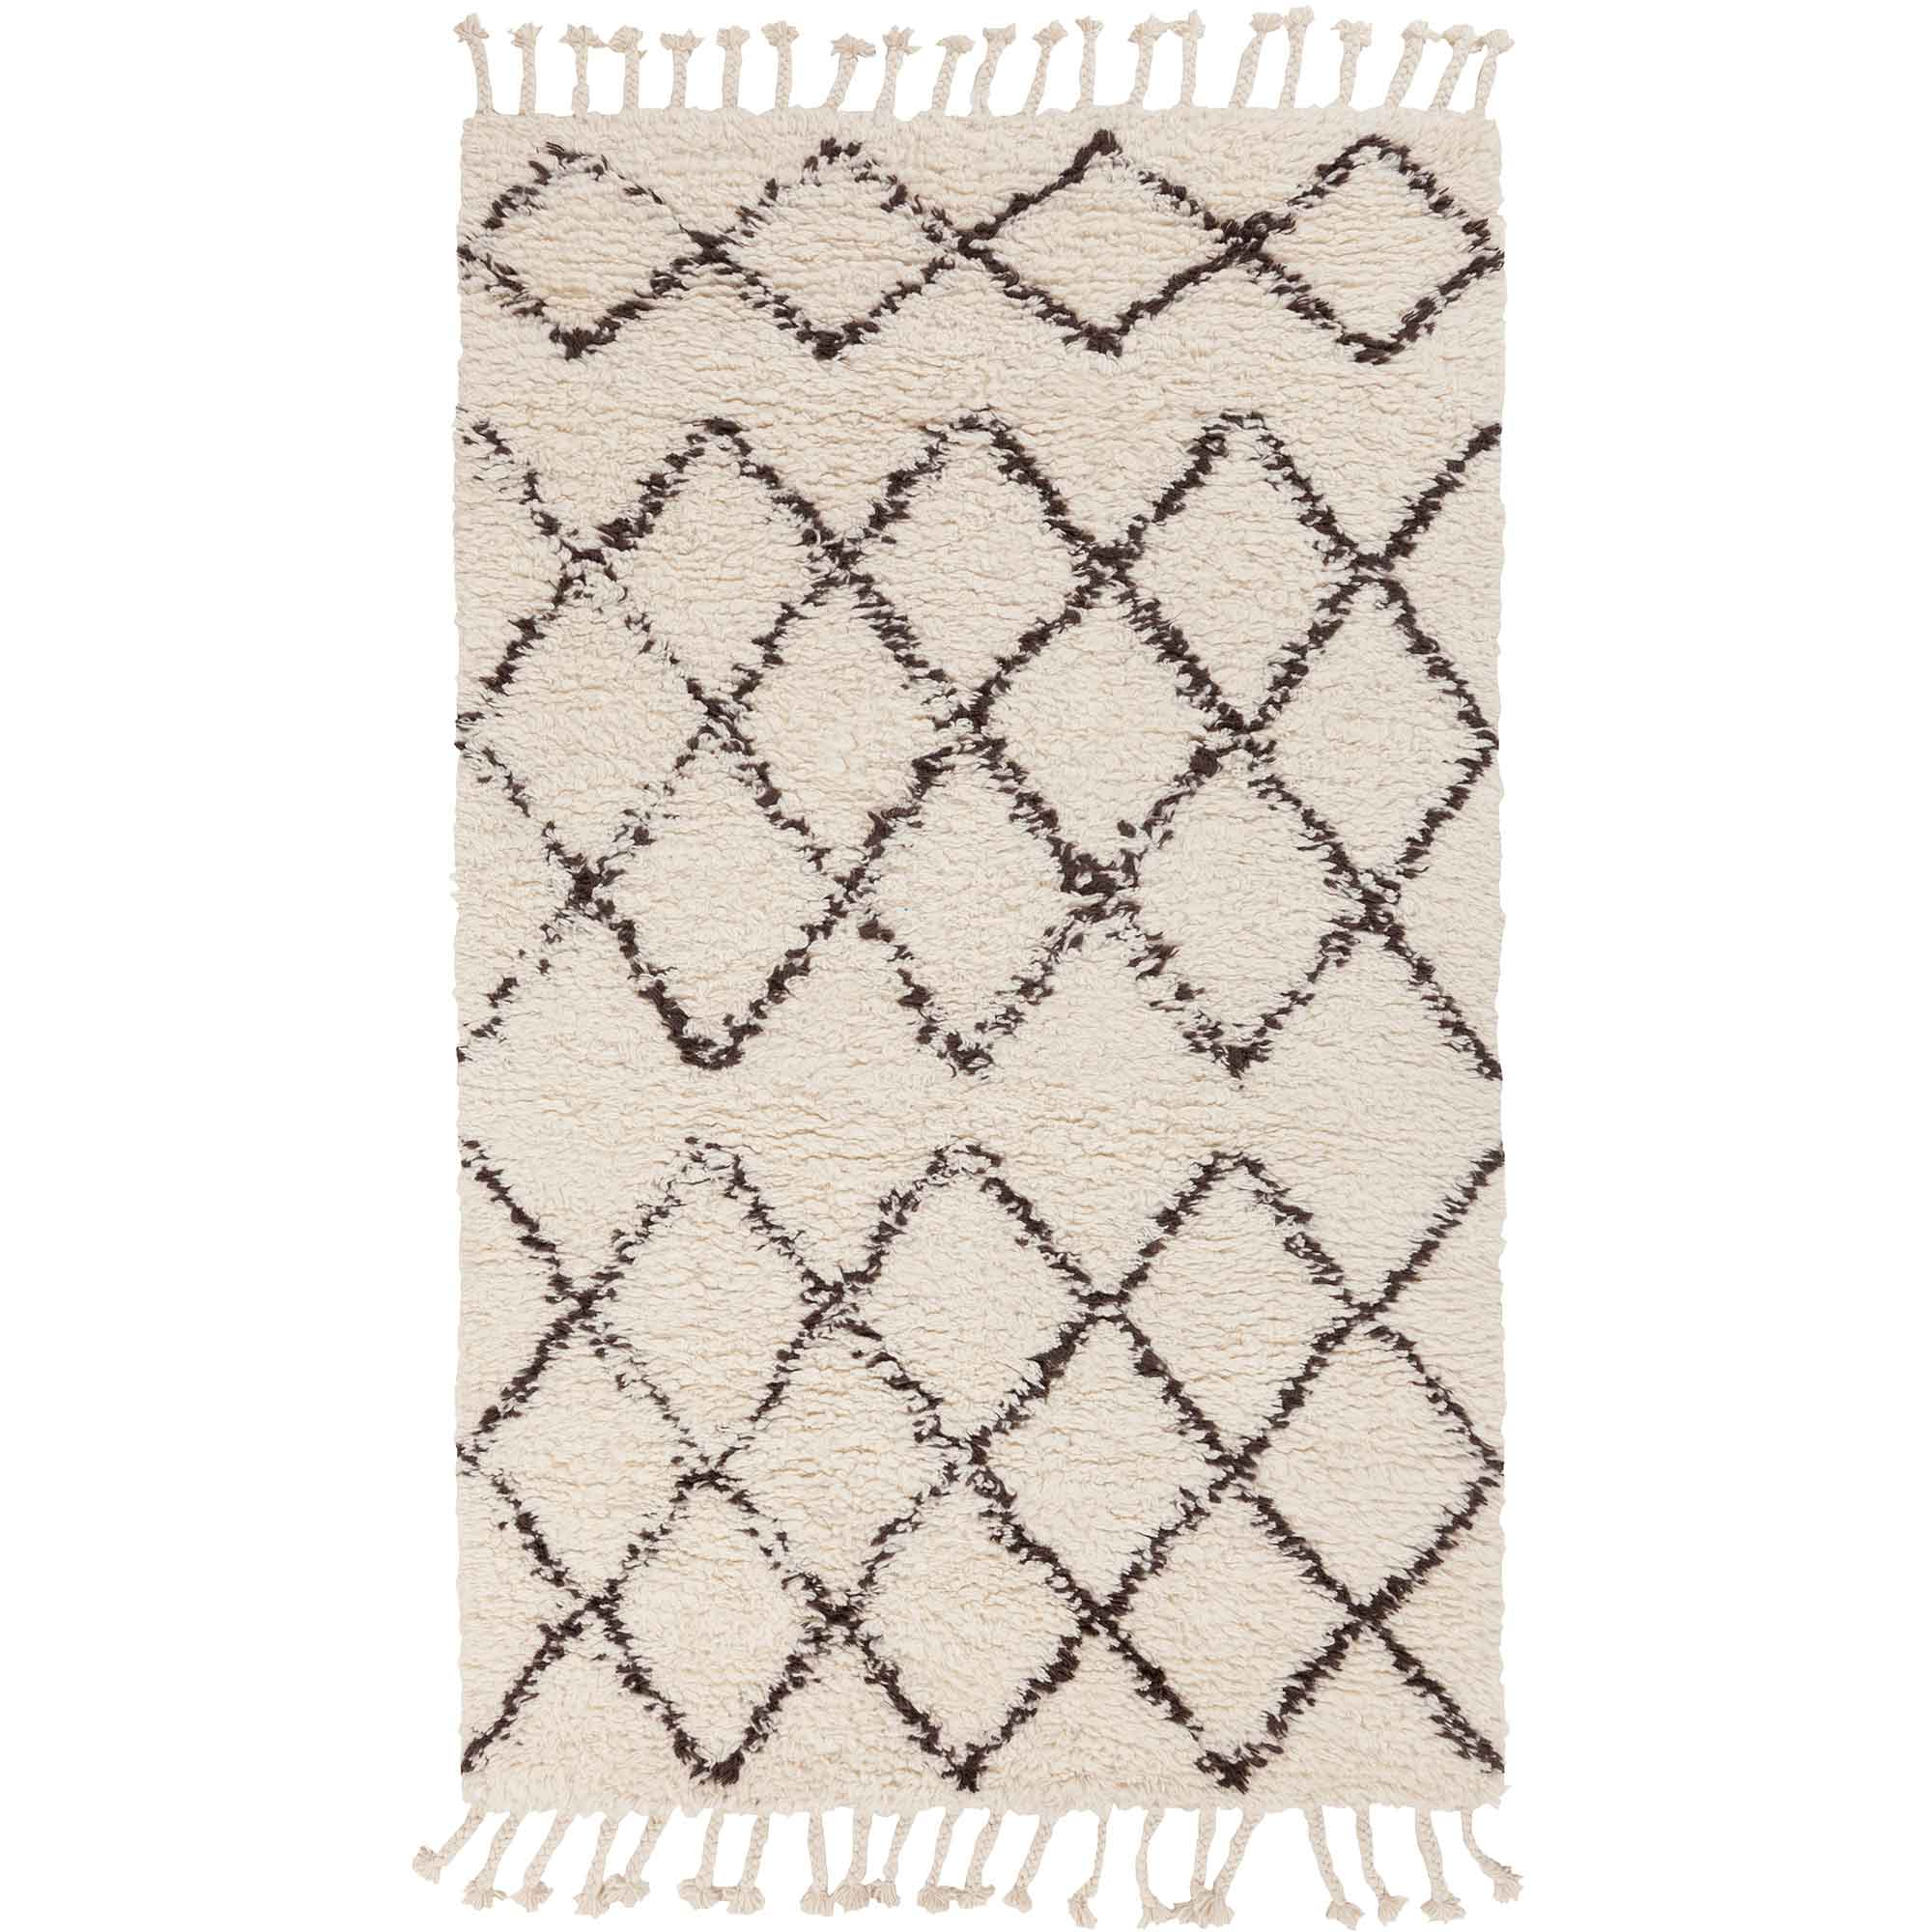 a rug room our bohemian living for earlam manchester susan